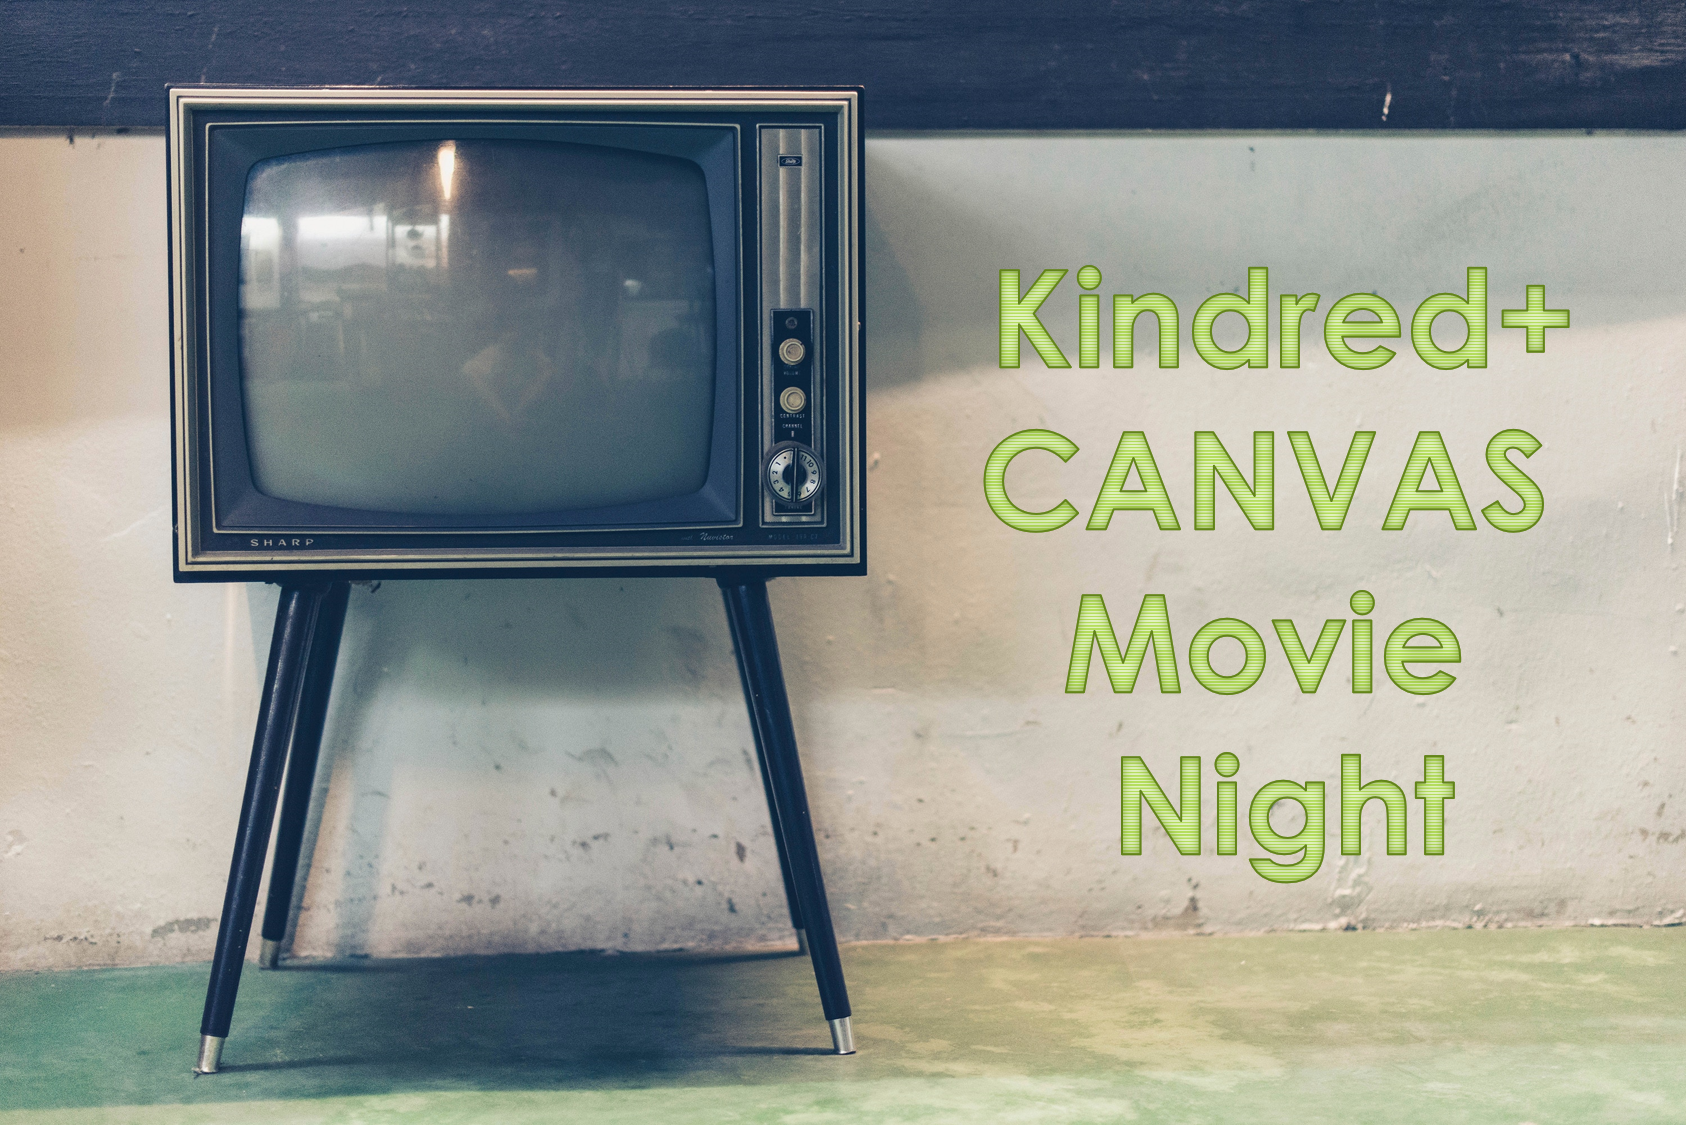 CANVAS Kindred Movie Night.png